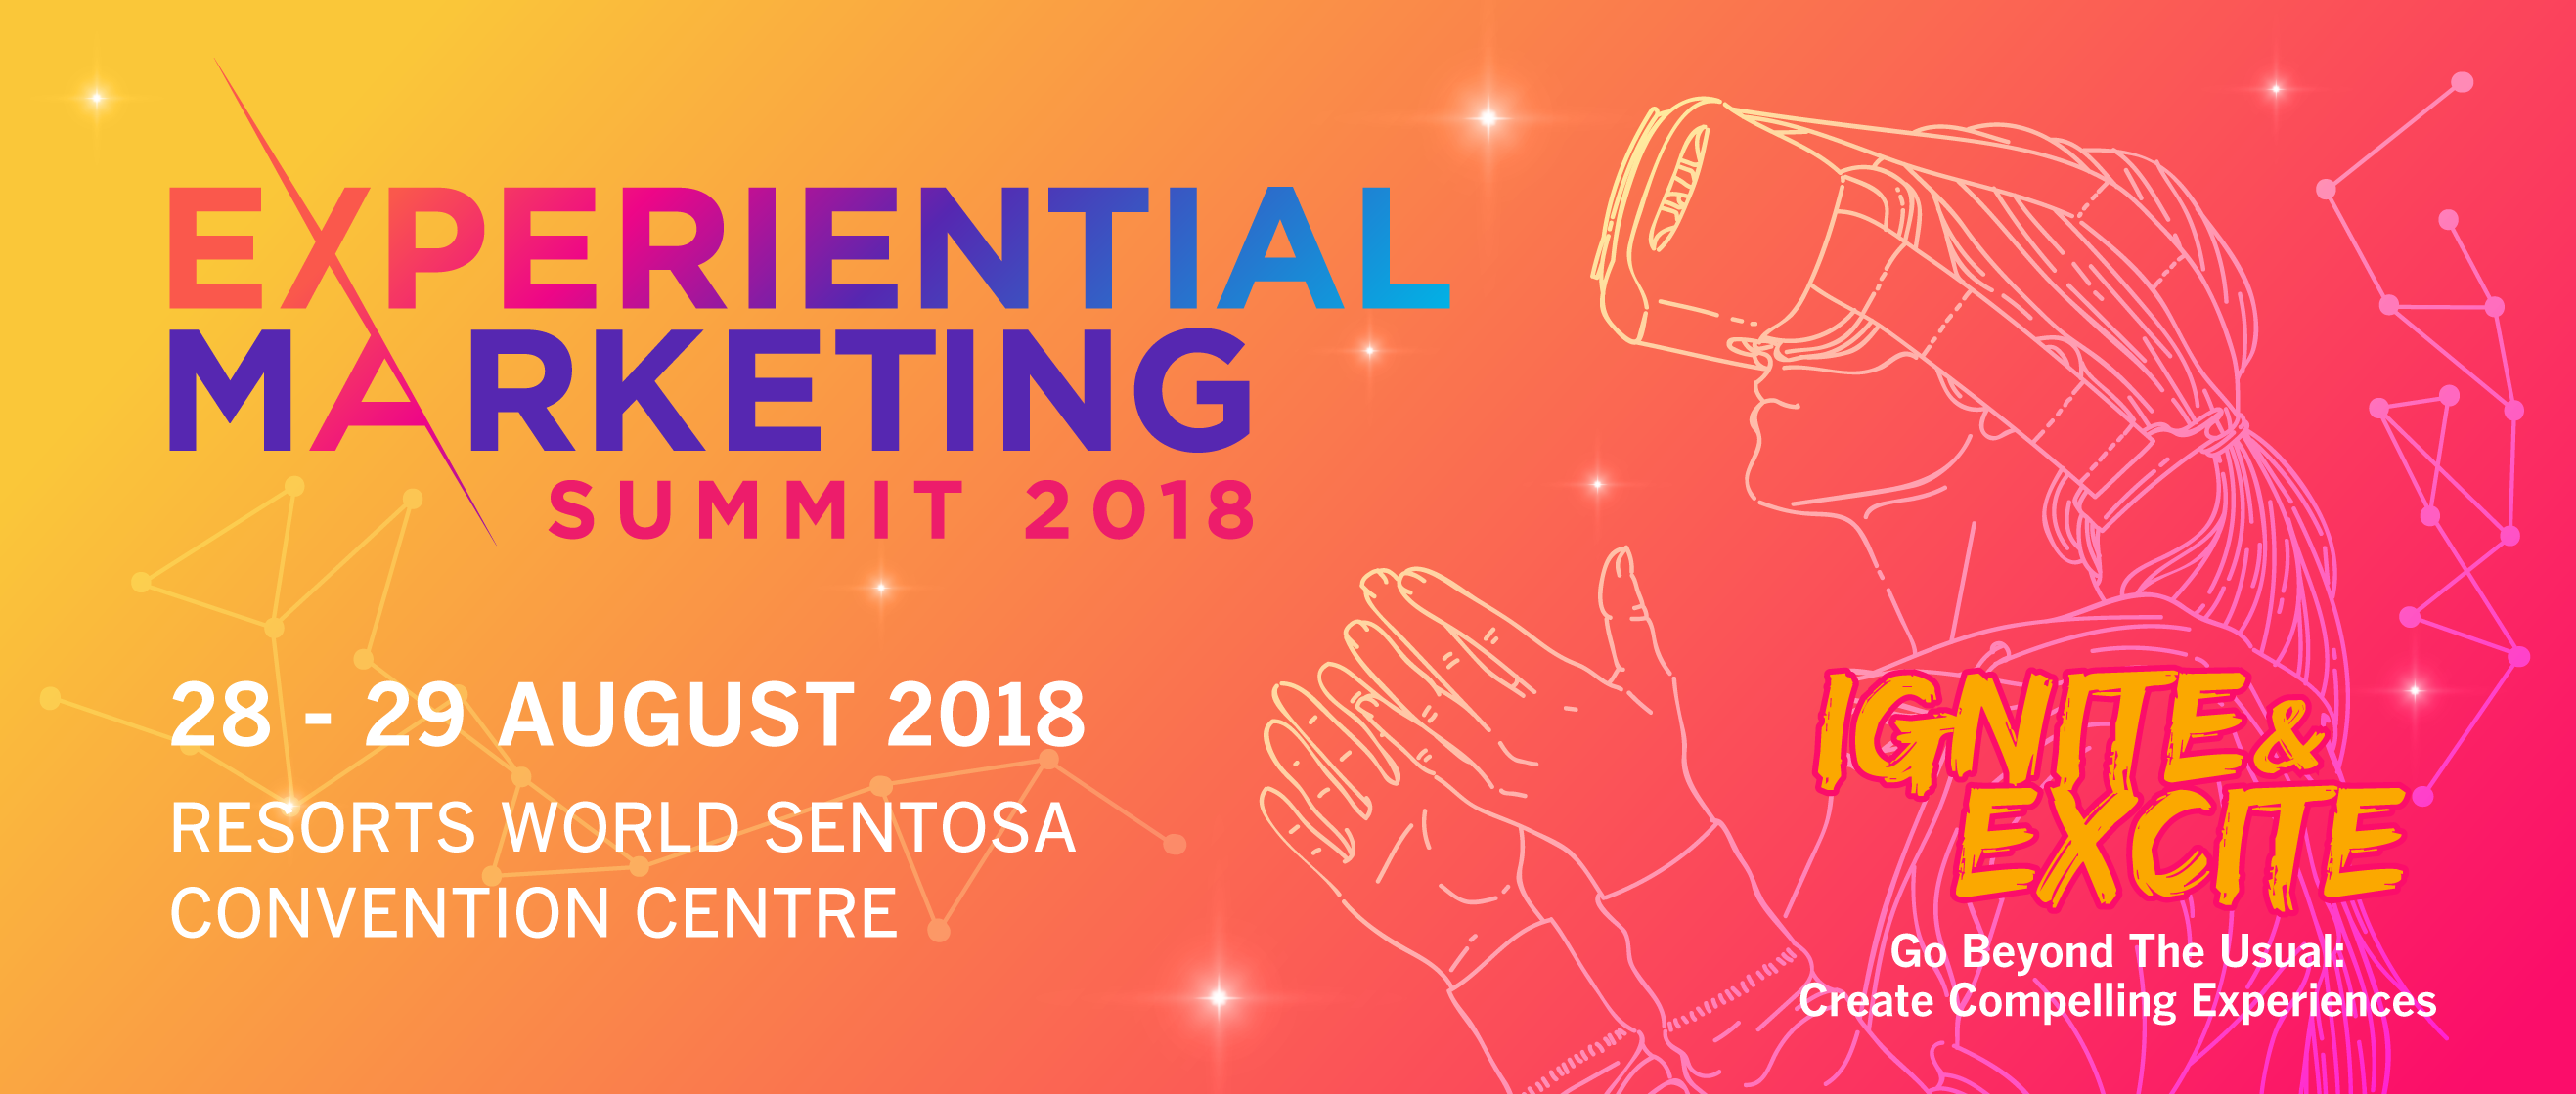 Experiential Marketing Summit 2018_banner